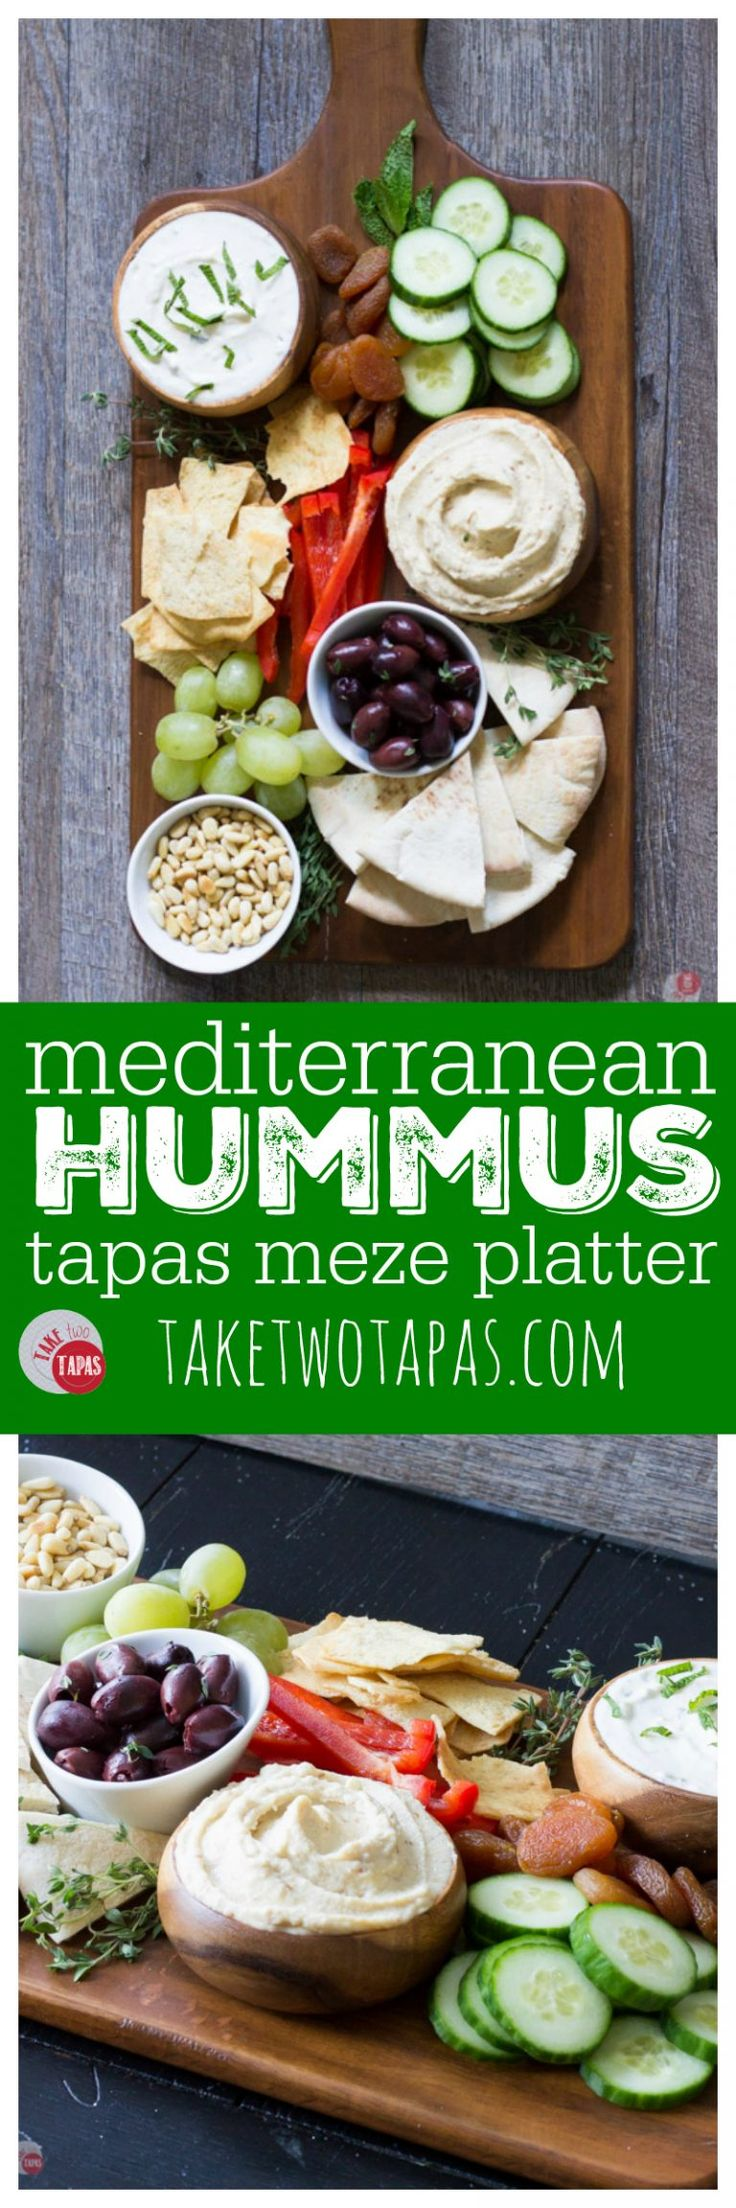 Take your holiday entertaining to the Mediterranean with a tapas platter complete with hummus and other snacks to keep your guests happy! Mediterranean Tapas Meze Platter for Your Holiday Entertaining Recipe Tutorial   Take Two Tapas